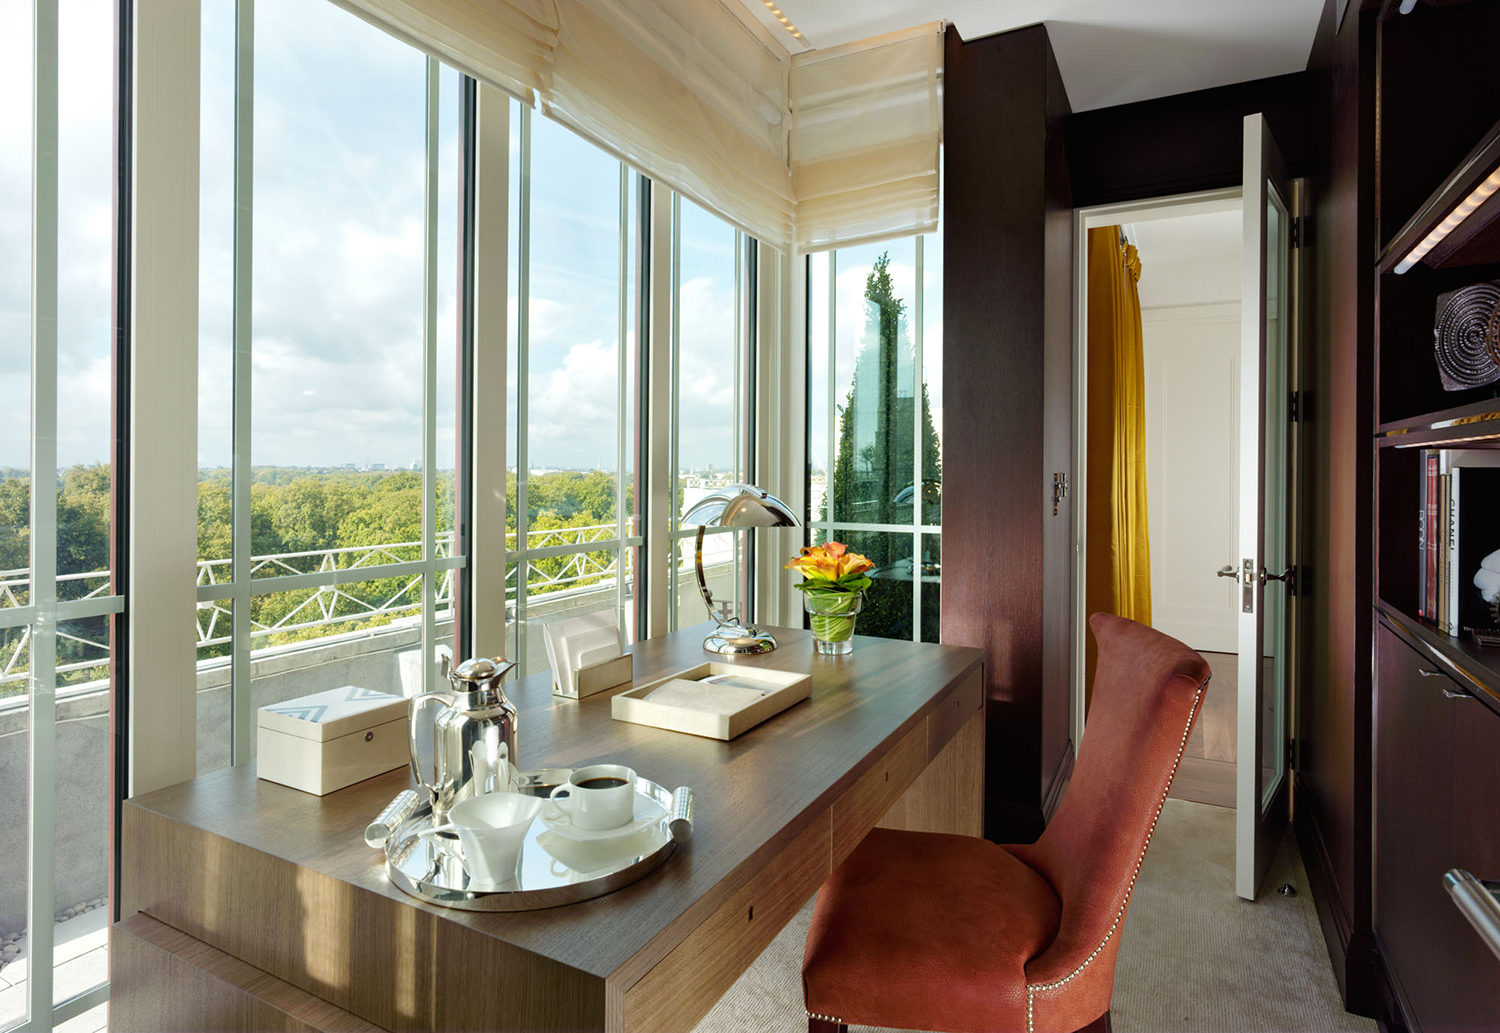 Harlequin study room - The Dorchester (HIGH RES -LANDSCAPE).jpg